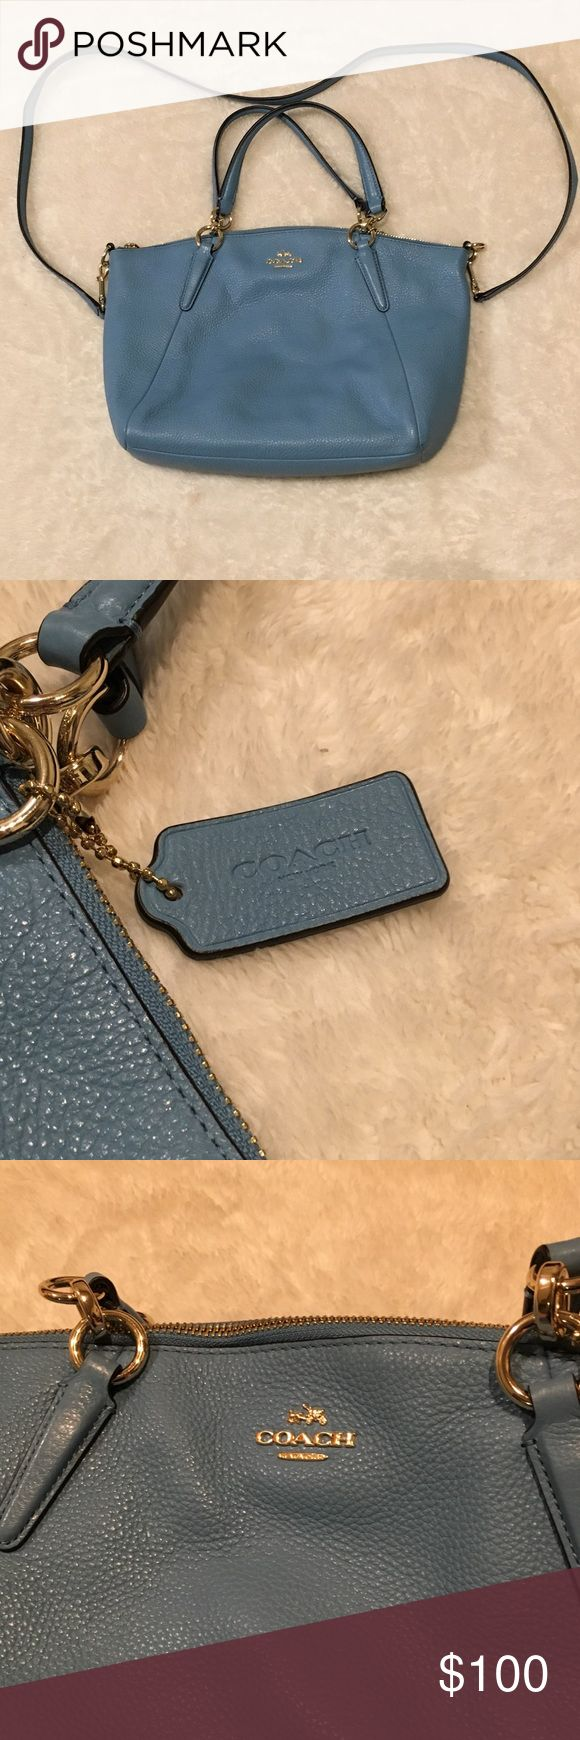 Blue leather Coach Purse Baby blue leather coach purse. Used only a handful of times. Pebbled blue leather makes this purse a soft fashion statement with any outfit in any season. Practically new and ready to ship Coach Bags